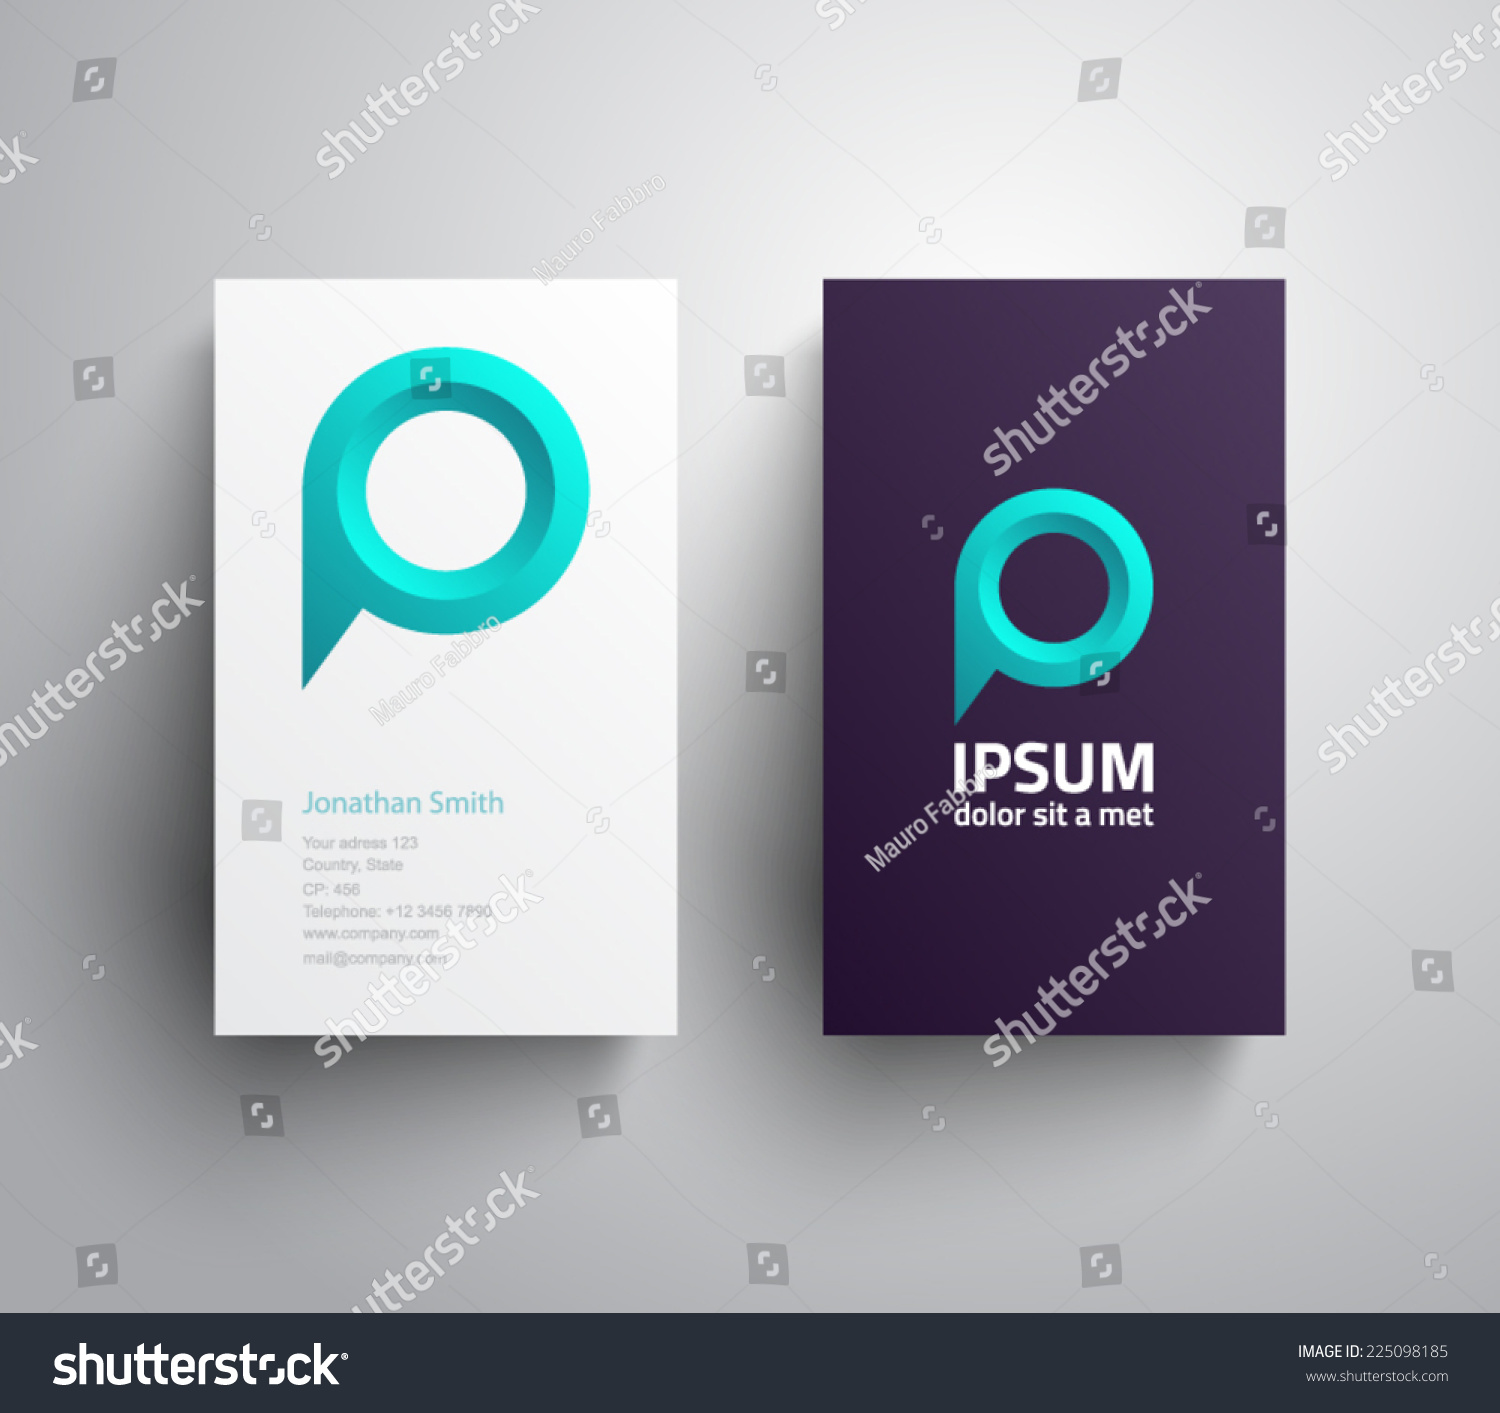 business card logo speech bubble map stock vector 225098185 business card logo speech bubble map point chat social network ubication